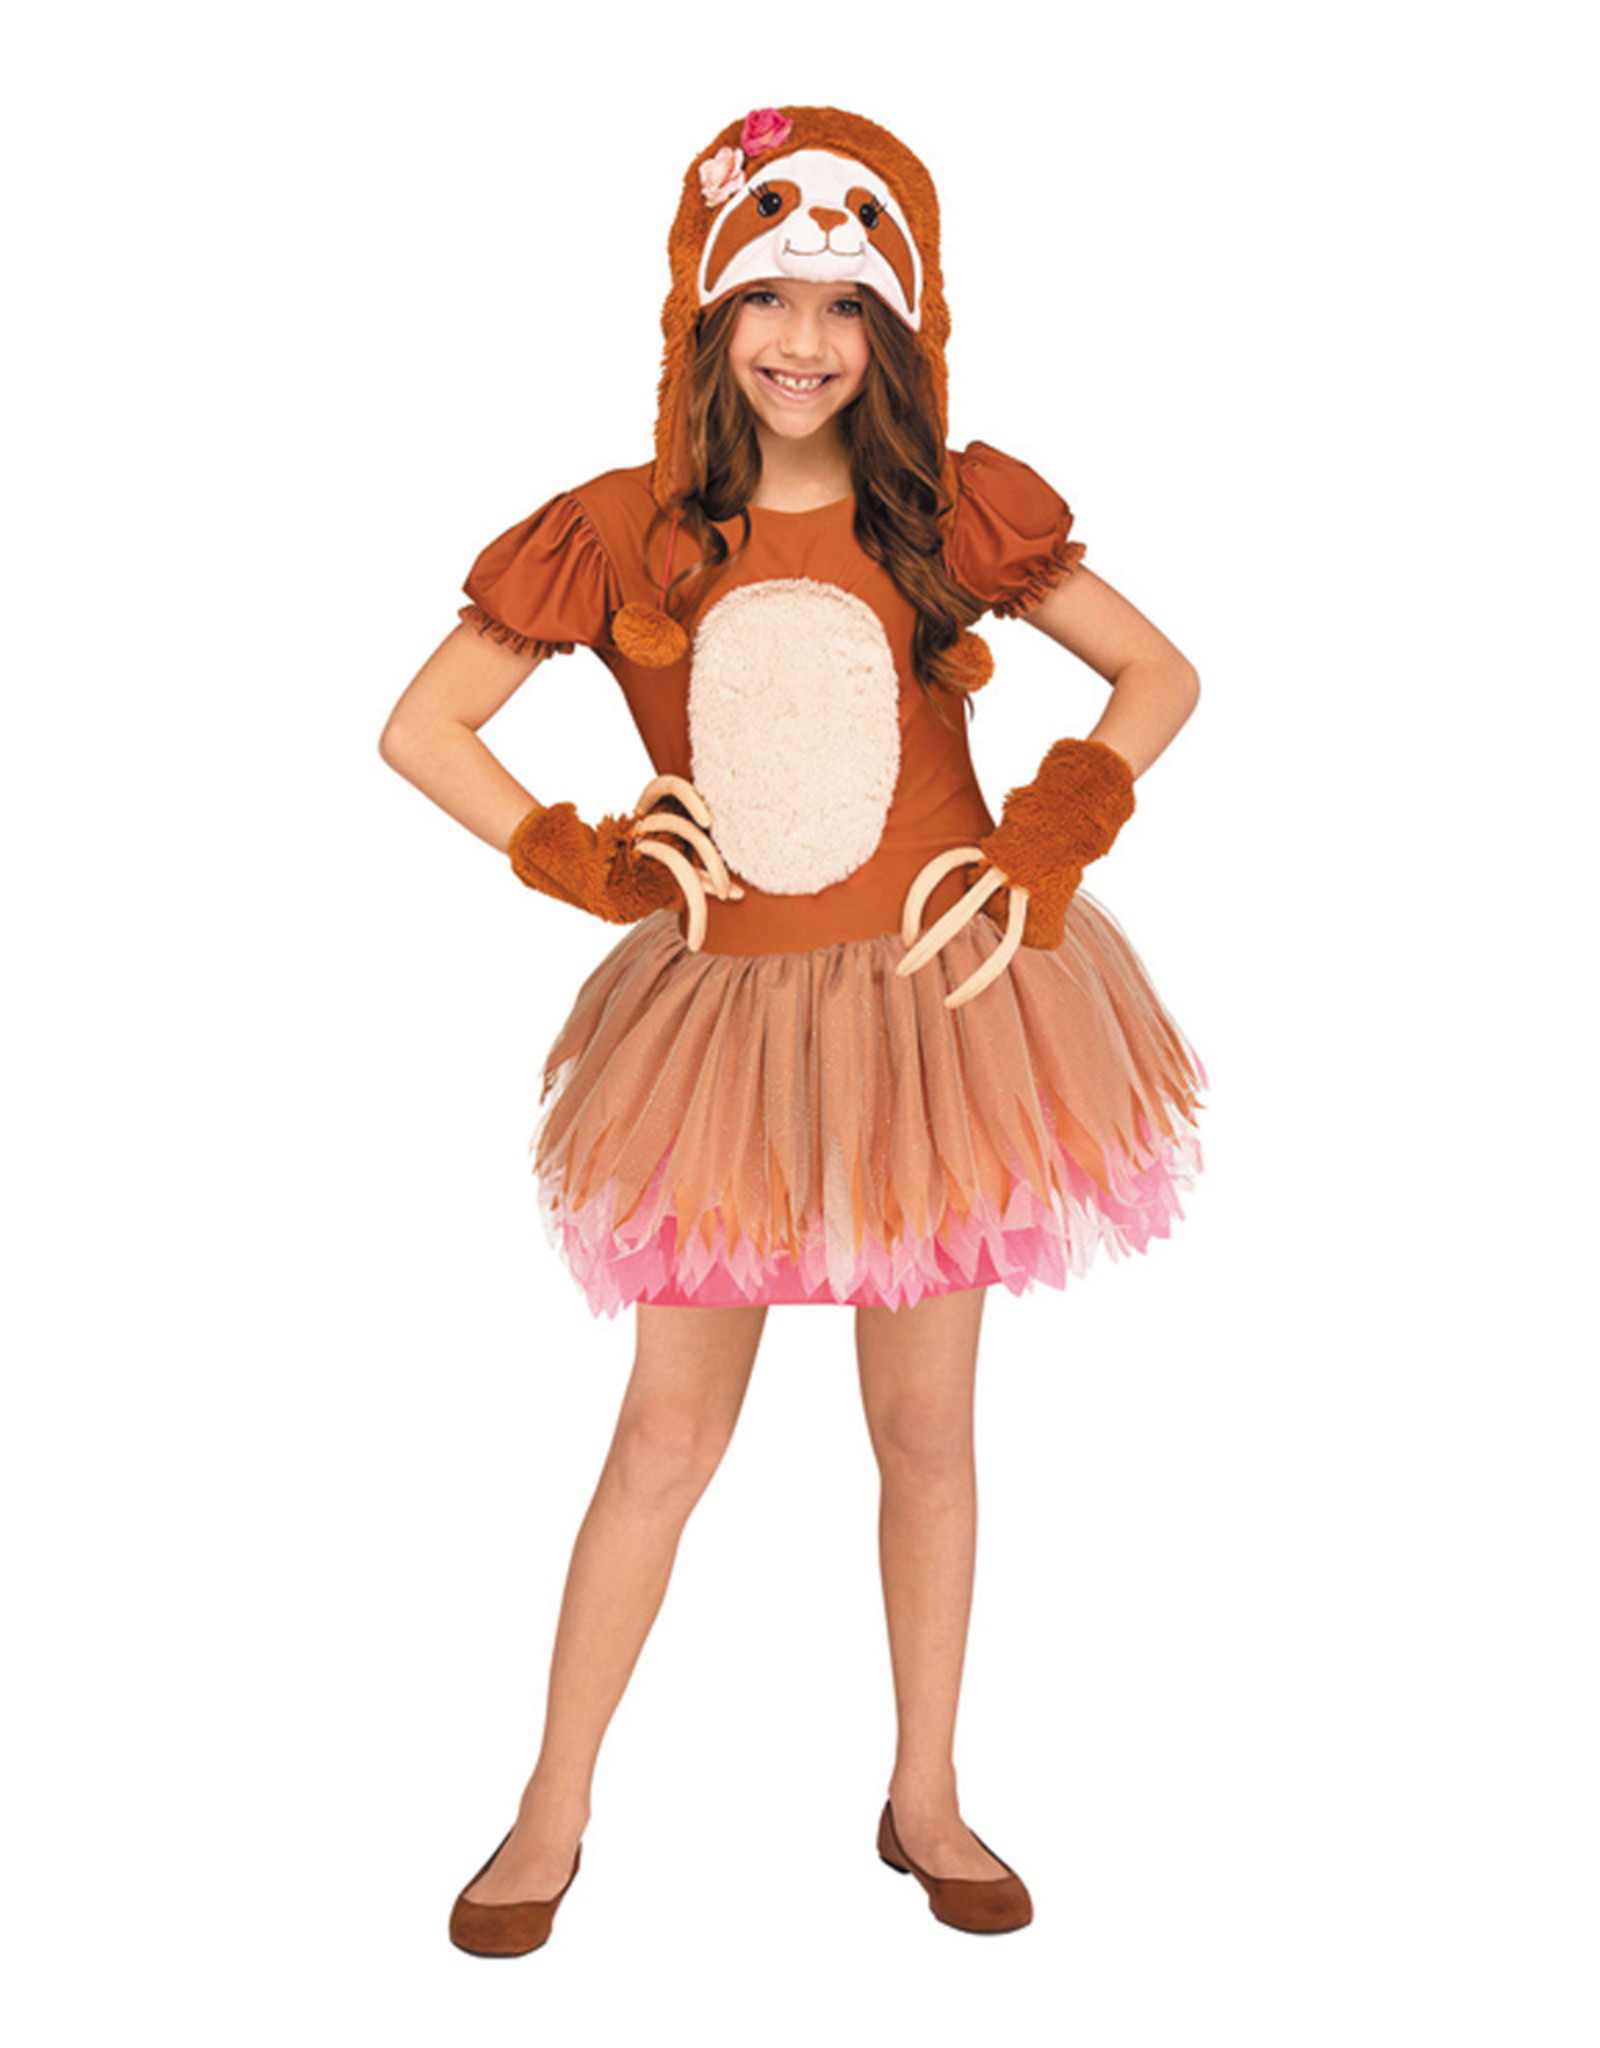 Sassy Sloth Costume - Girls